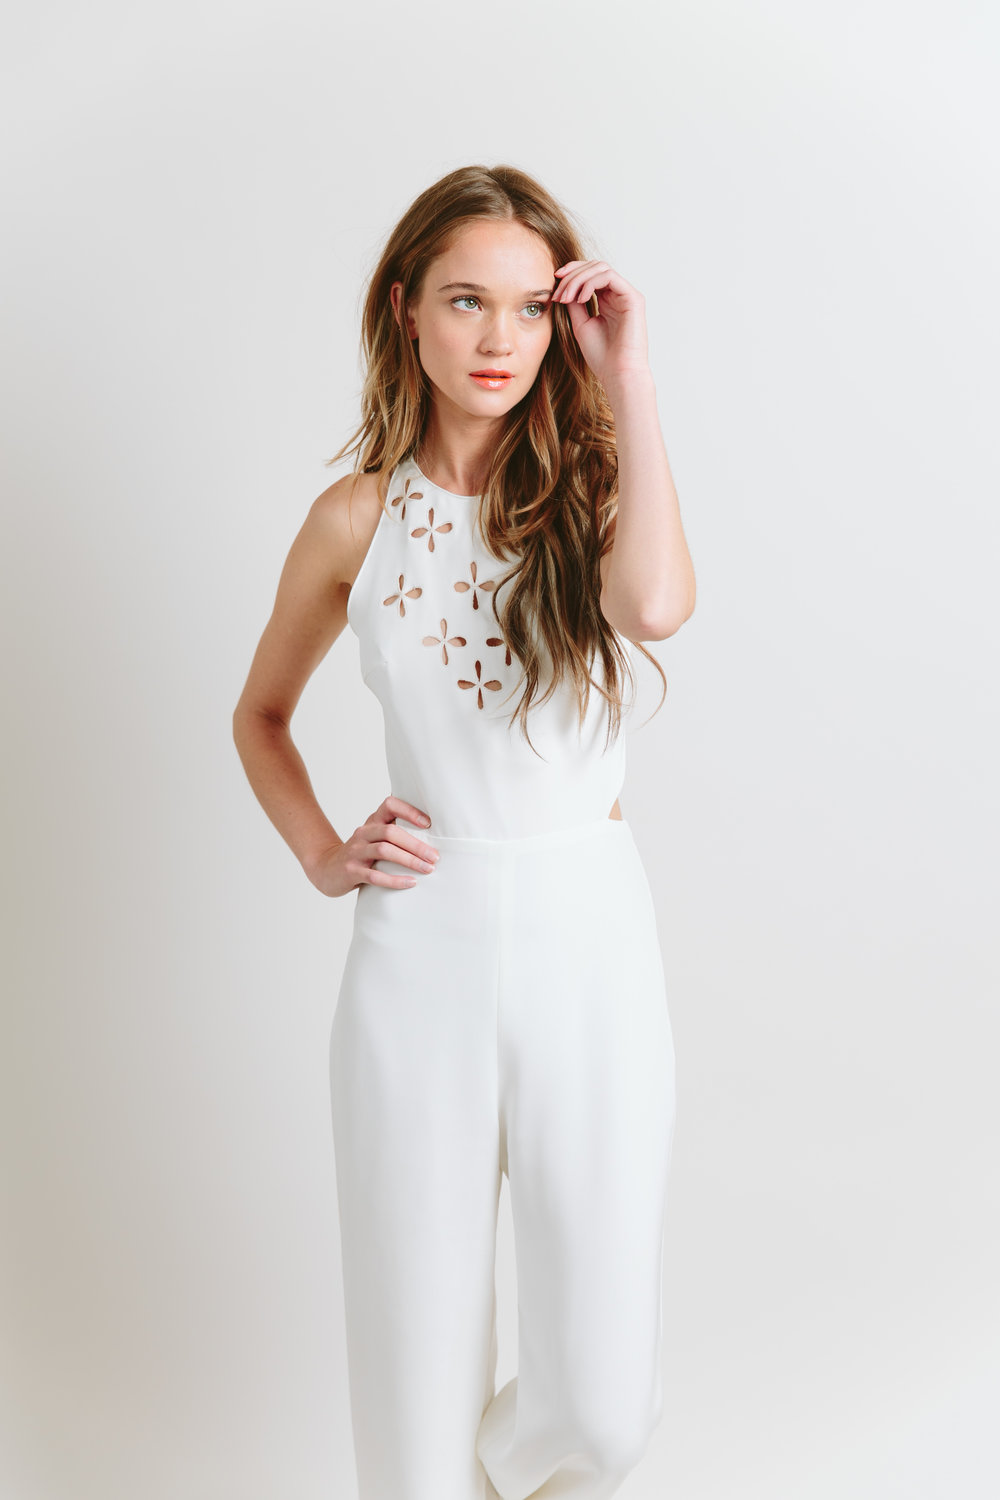 LOVE FIND CO. // The Non-Traditionalist Bride